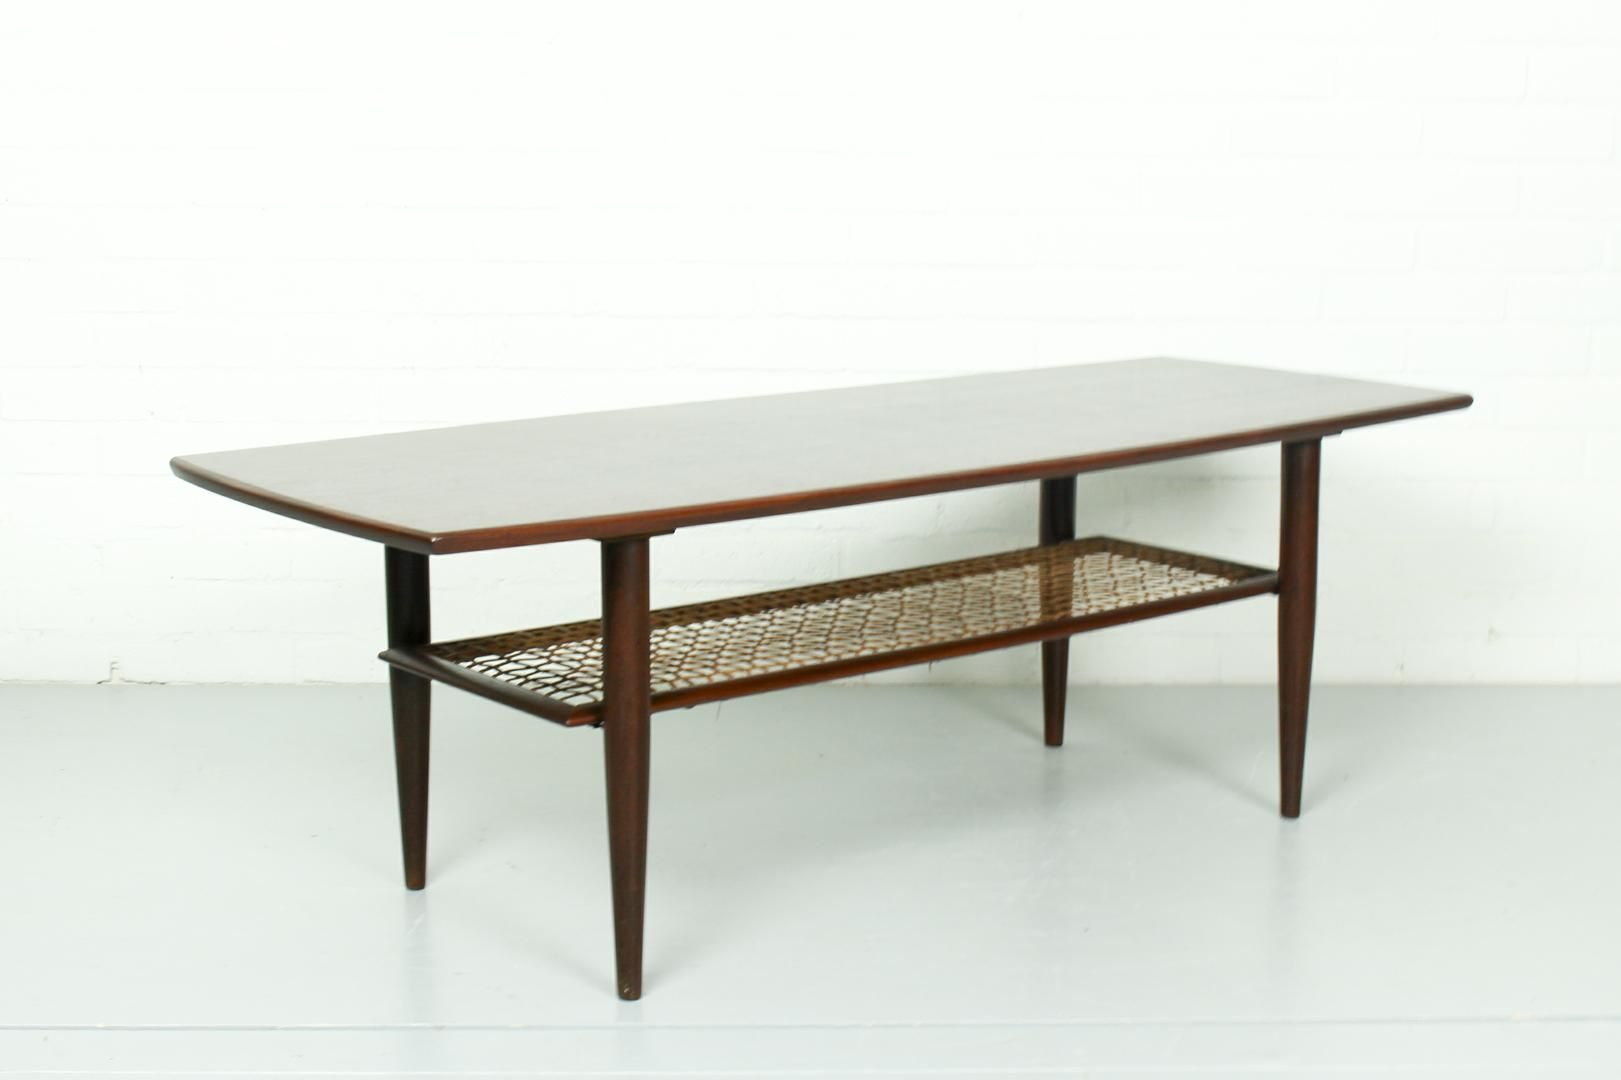 Vintage teak coffee table with rattan magazine rack 1960s